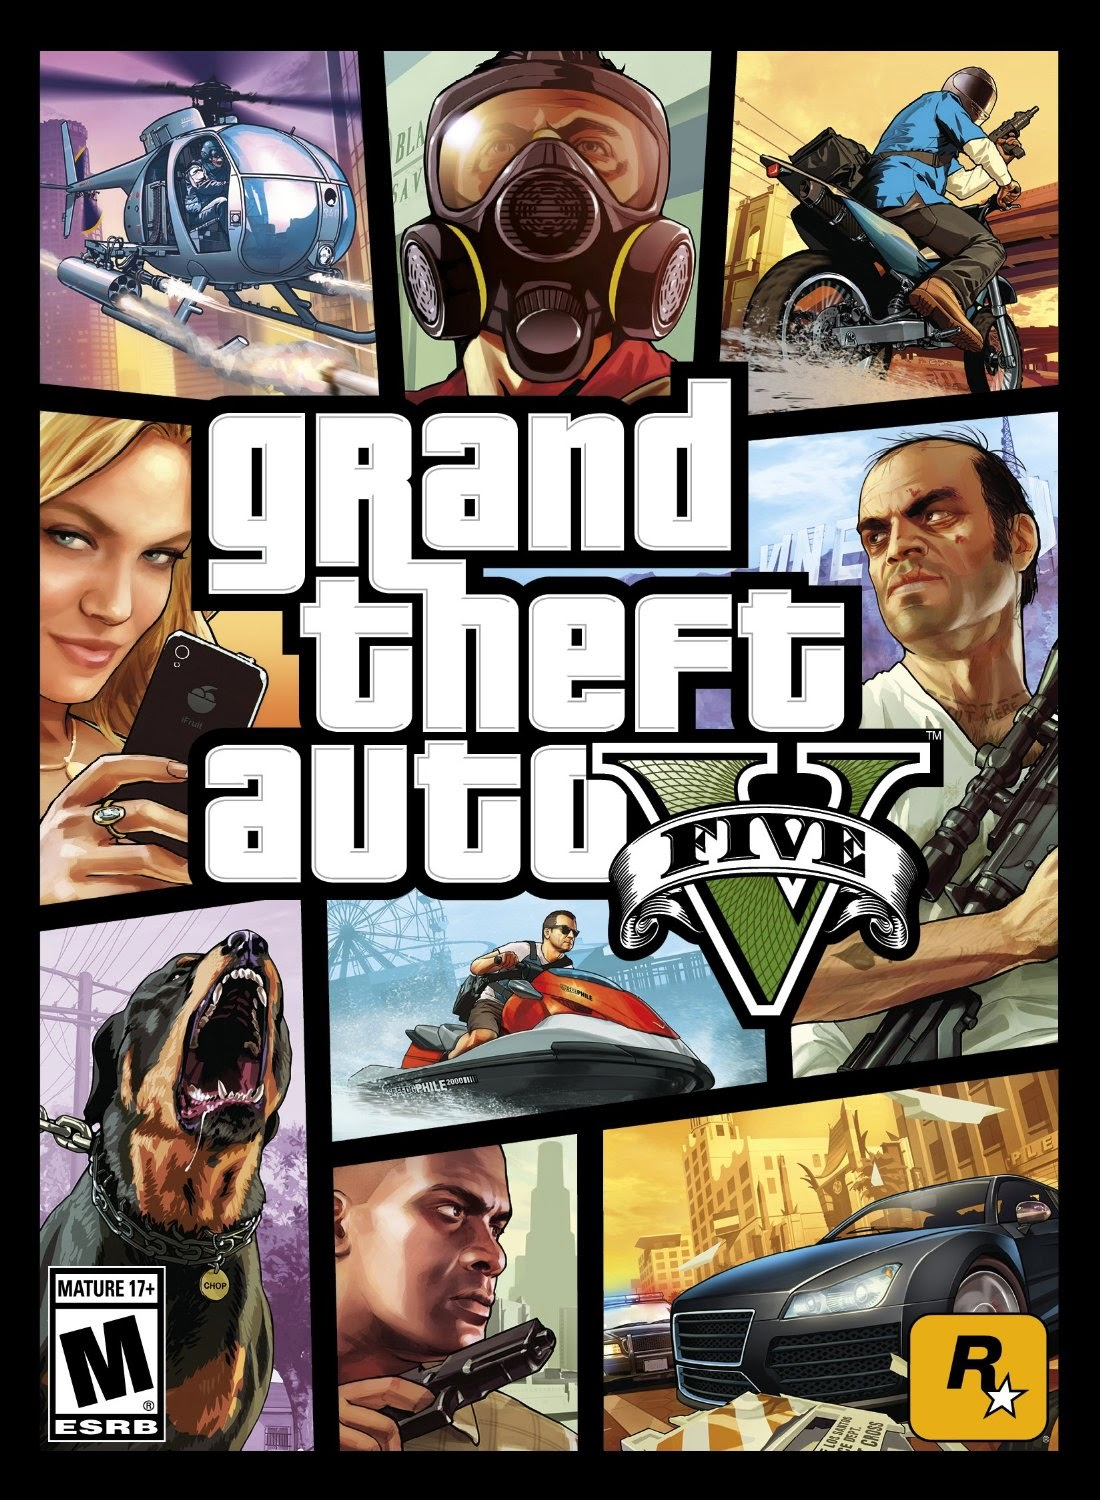 Descargar Grand Theft Auto V PC Cover Caratula-www.juegosparawindows.com